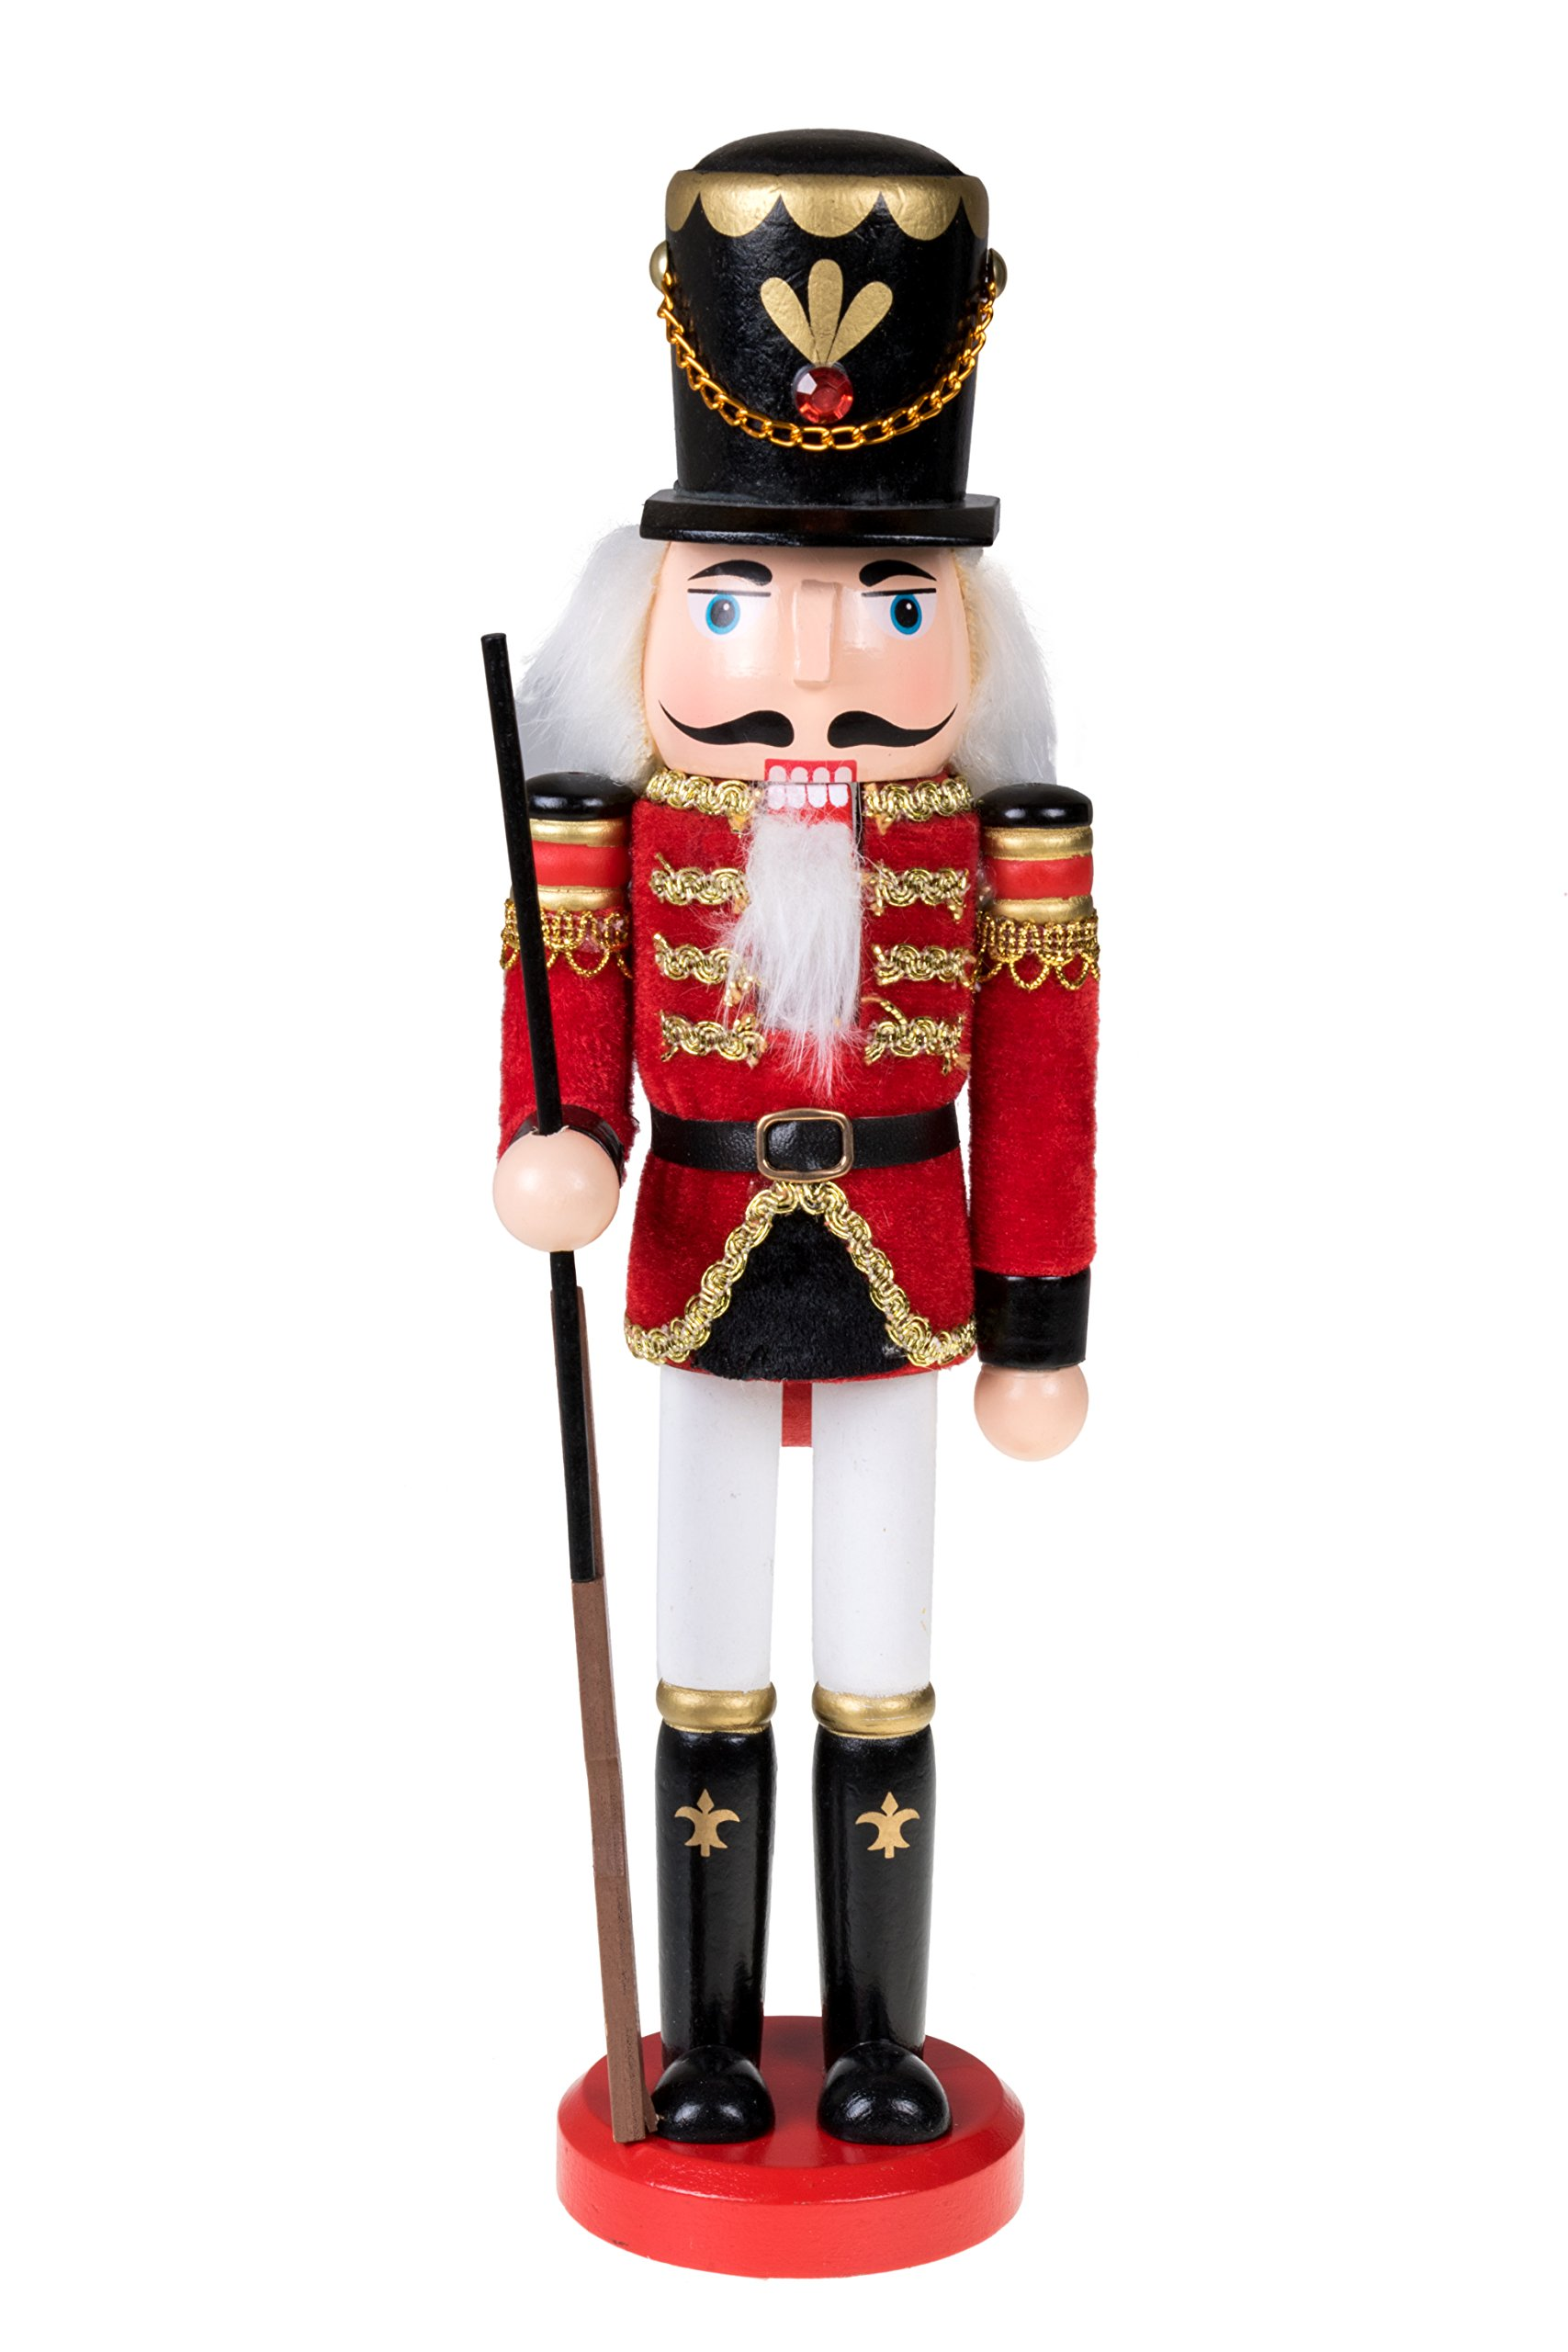 Traditional Wooden Soldier Nutcracker with Rifle by Clever Creations | Festive Christmas Decor | 12'' Tall with Gun Perfect for Shelves and Tables | 100% Wood